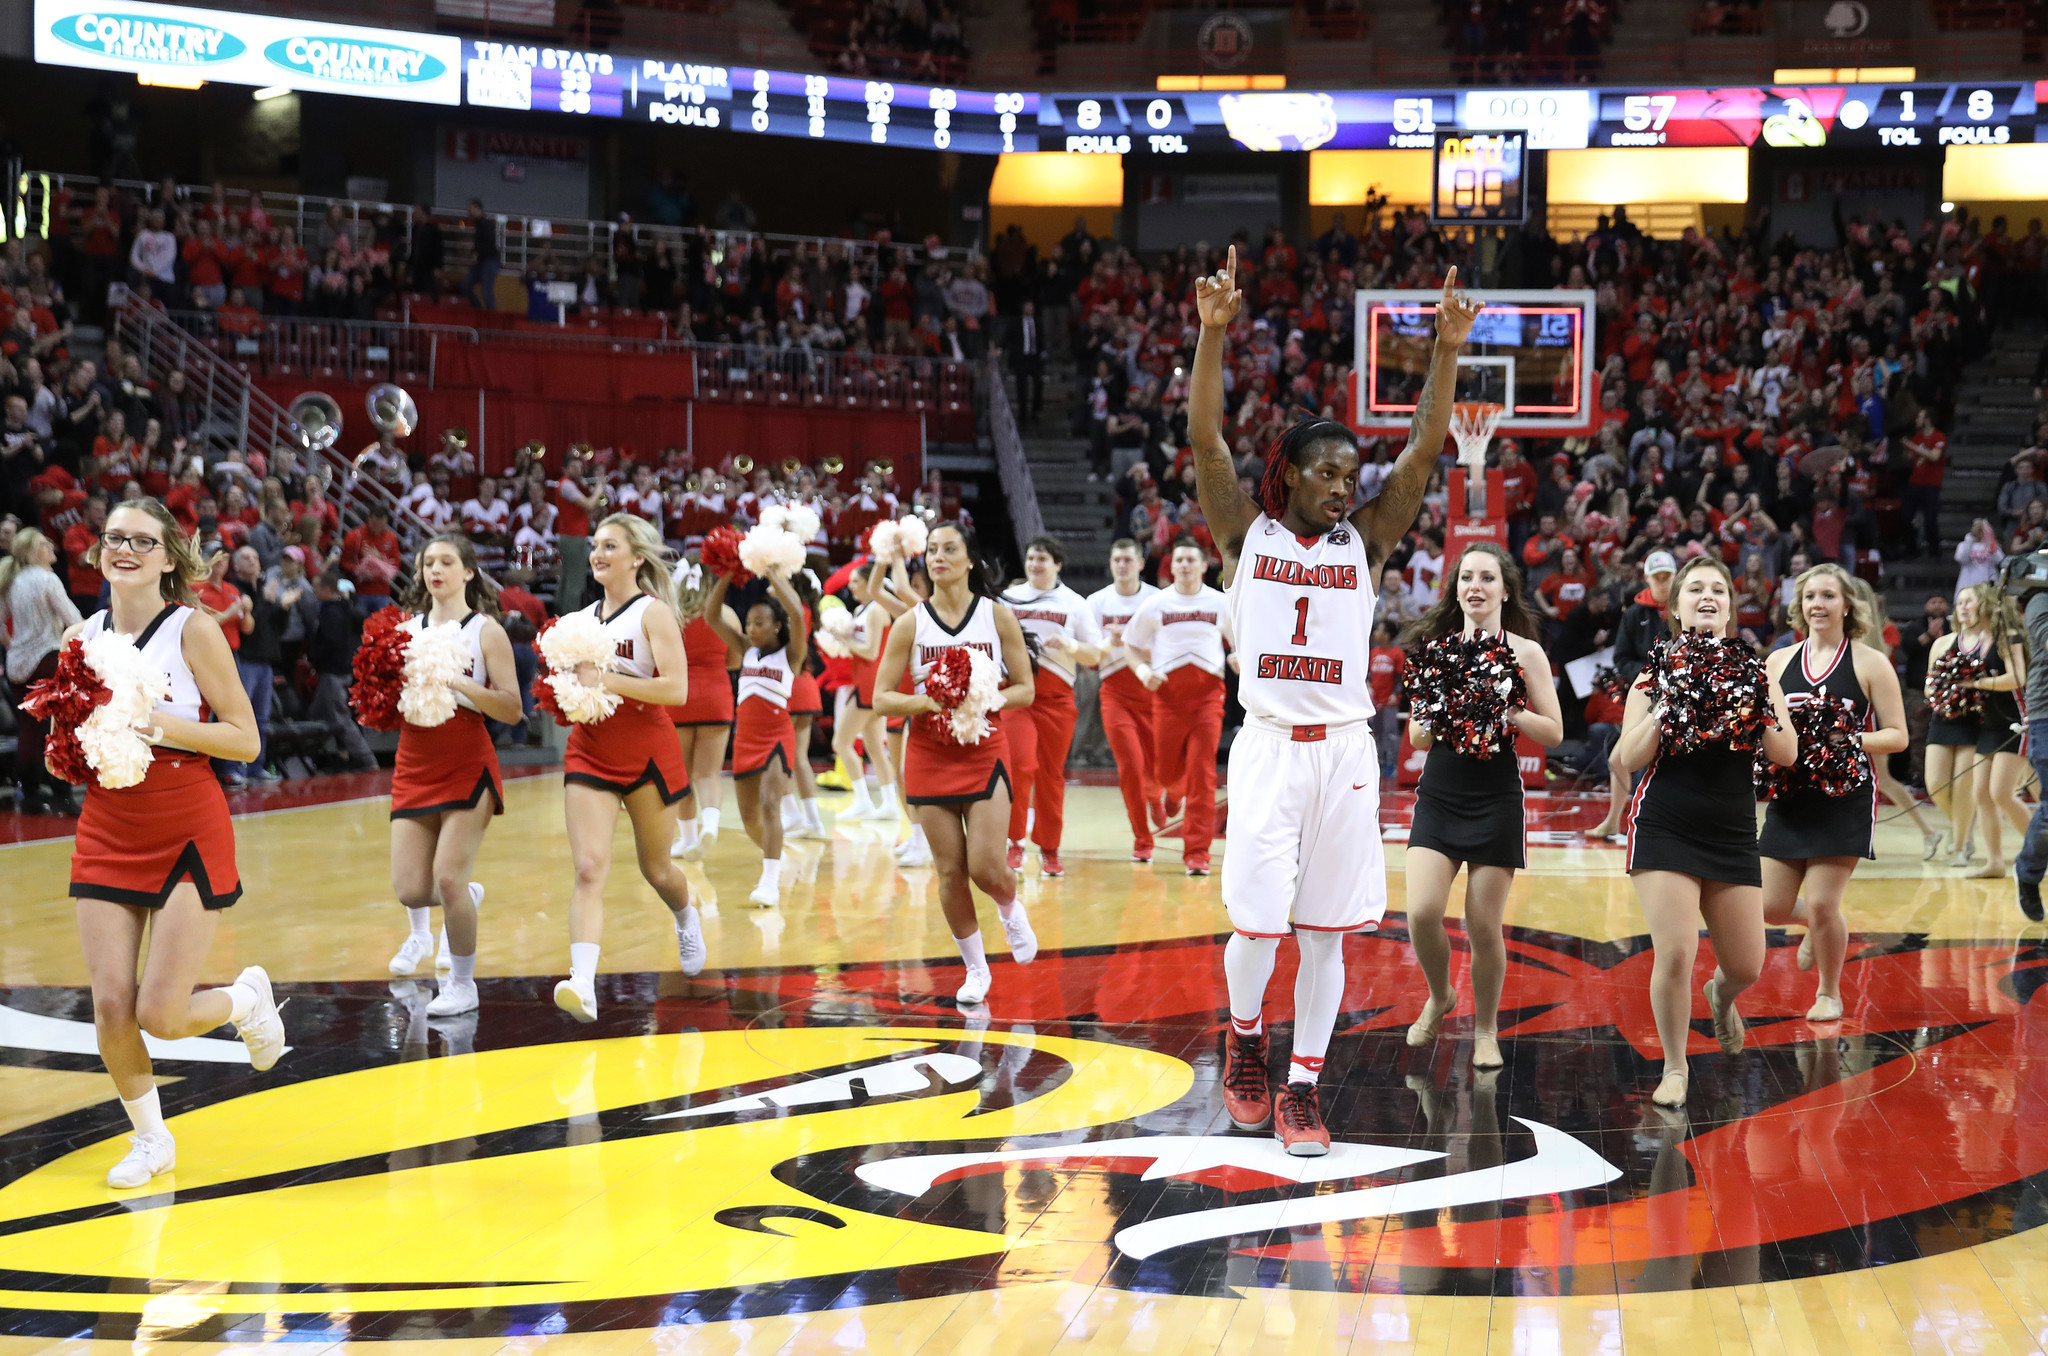 Illinois State fumes over 'idiotic, stupid' NCAA tournament exclusion - Chicago Tribune